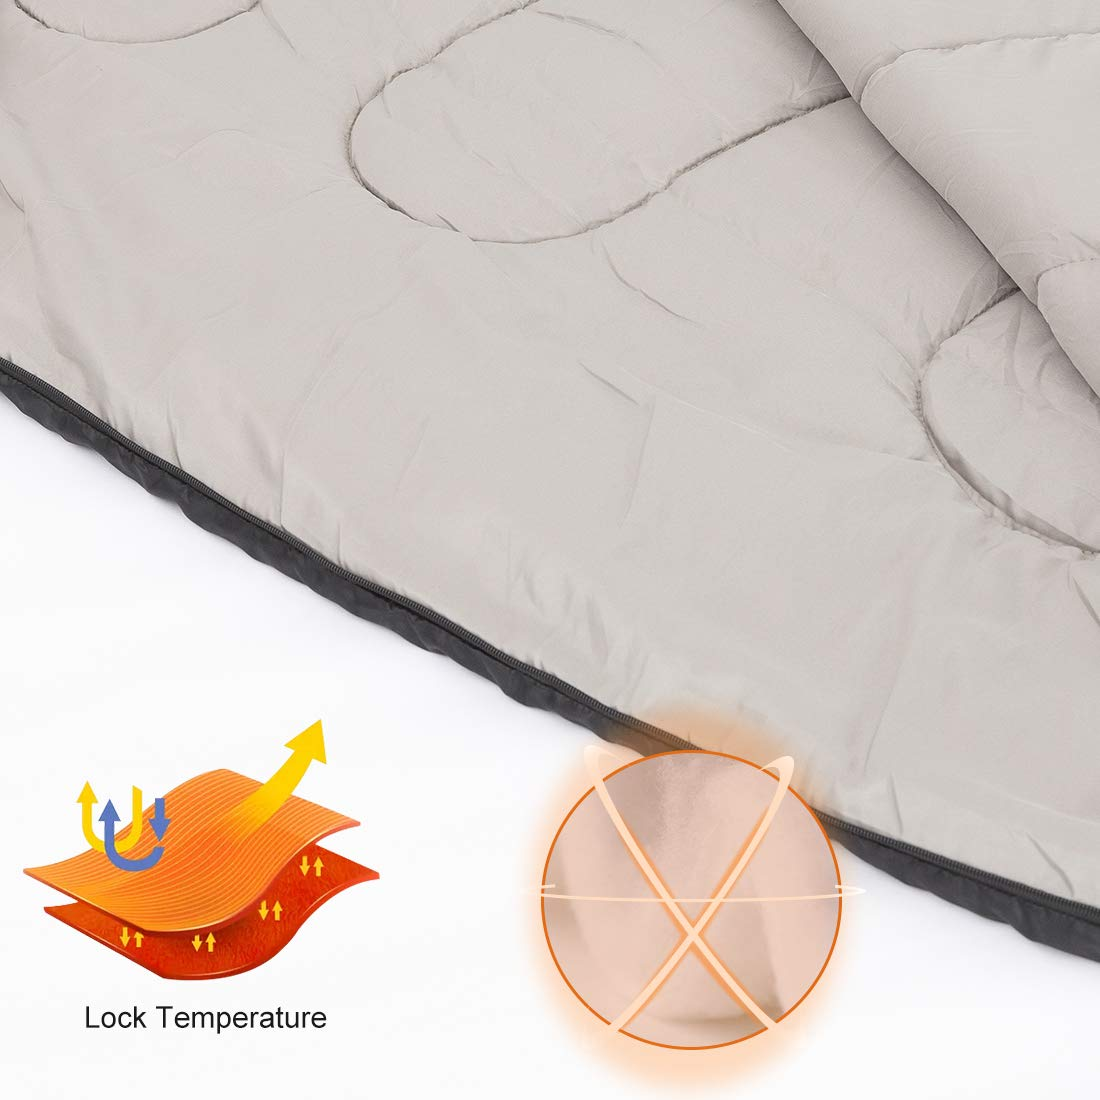 Indoor Outdoor Use Waterproof Portable Lightweight for Camping Backpacking Hiking WDNZ1976 Wantdo Mummy Sleeping Bag for Cold Weather 17.6-59 Fahrenheit 3-4 Season Windproof